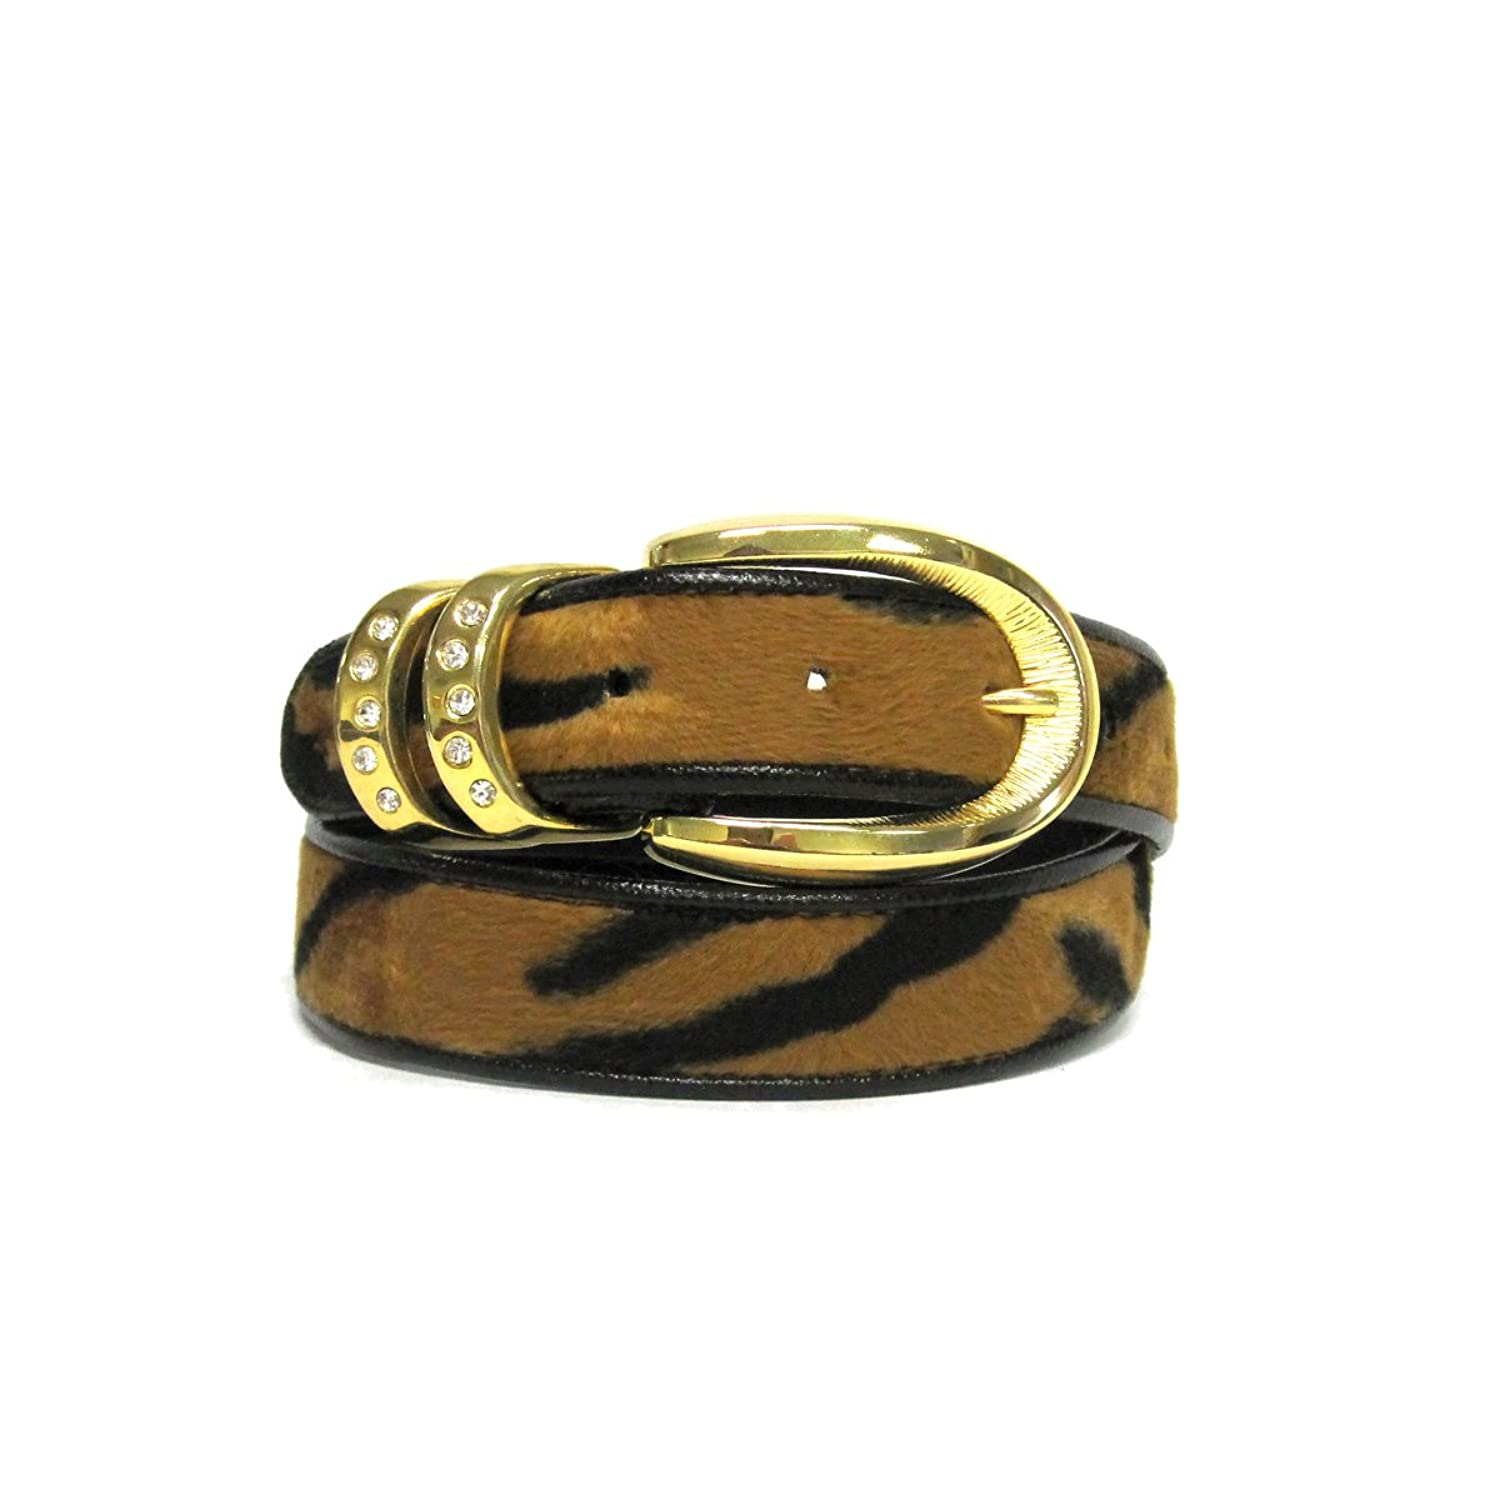 "1 1/8"" Women's Gold Buckle with Dual Keeper on Quality Tiger Faux Fur Leather..."